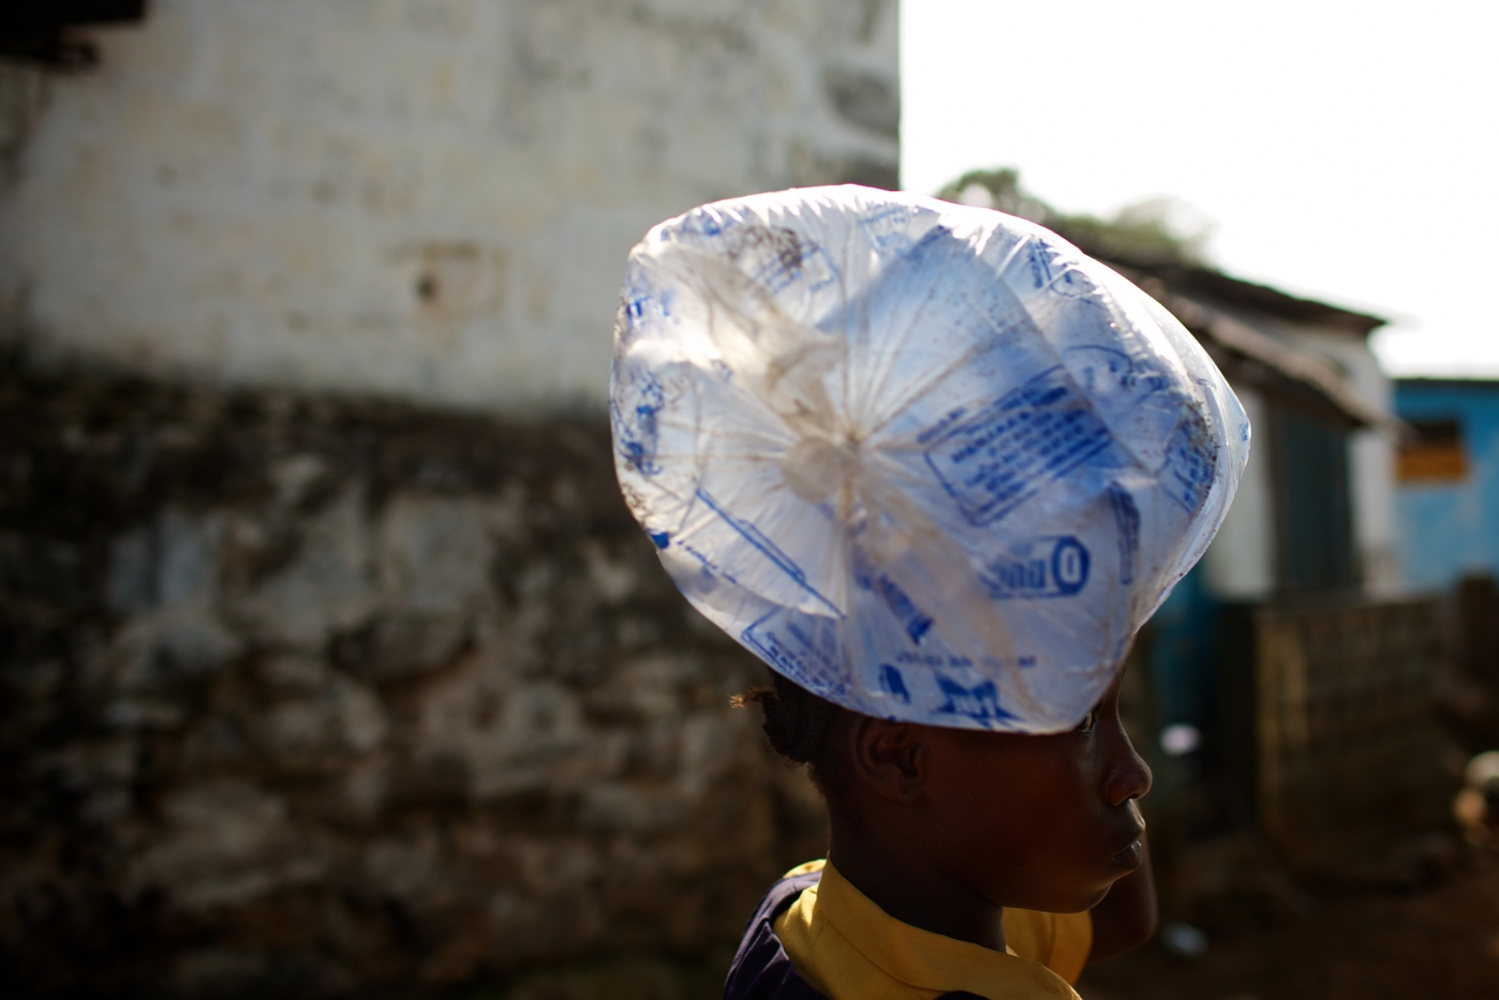 Monrovia, Liberia. April 2013. A girl carries bags with fresh water to be distributed at school during lunch time. The school, like many others, has no running water or toilets.